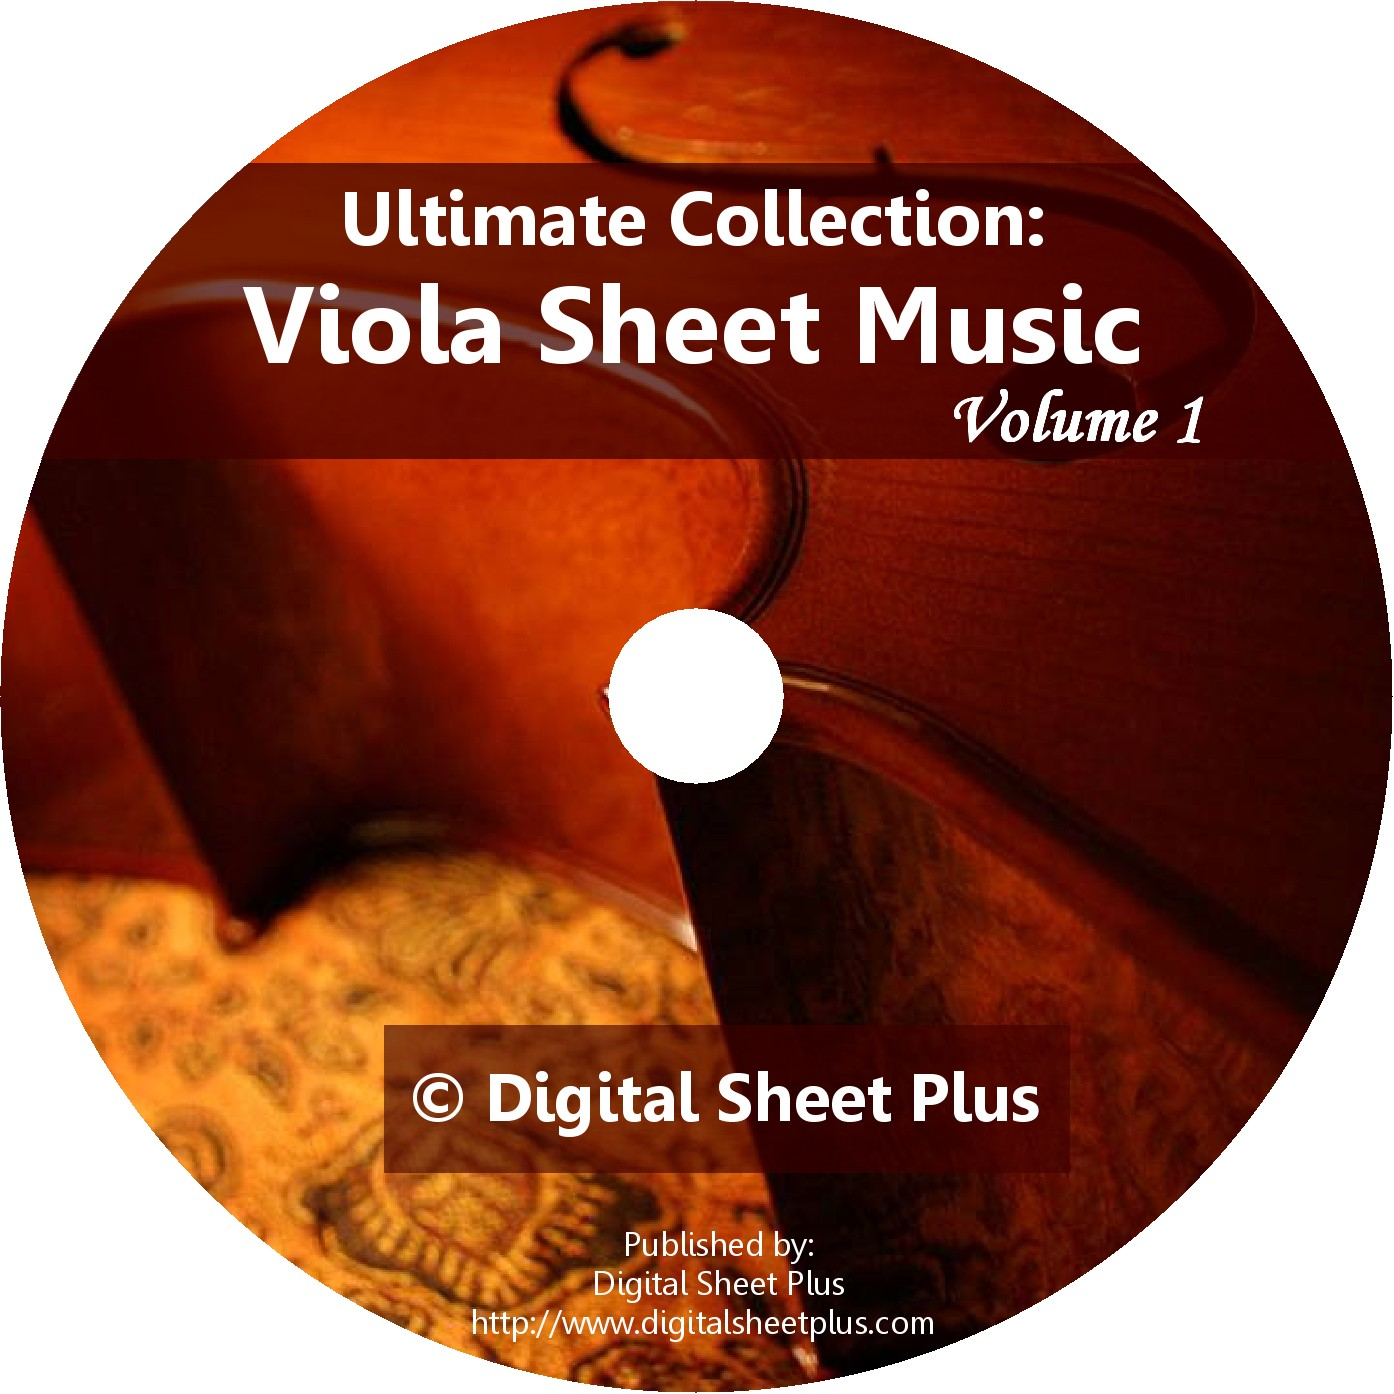 viola_collection_vol.1_cd_cover.jpg